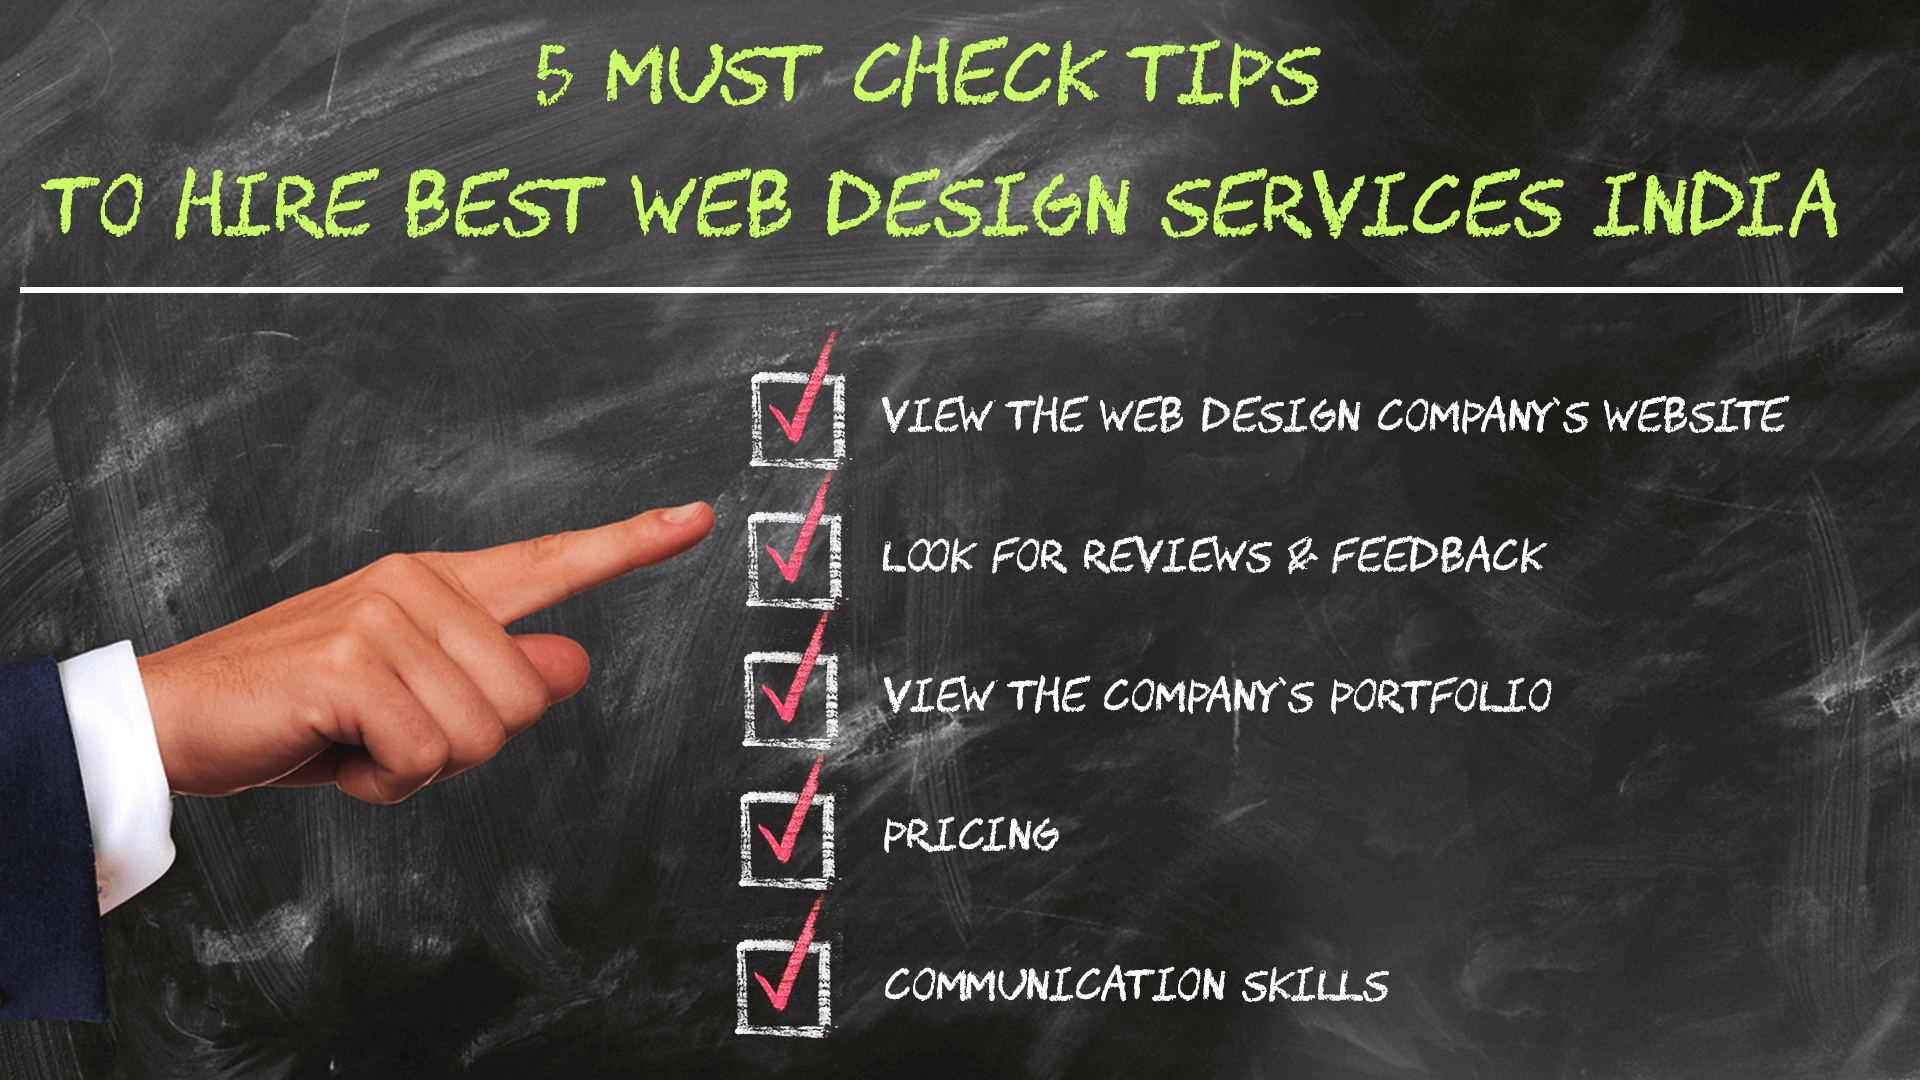 5-must-check-tips-hire-best-web-design-services-india